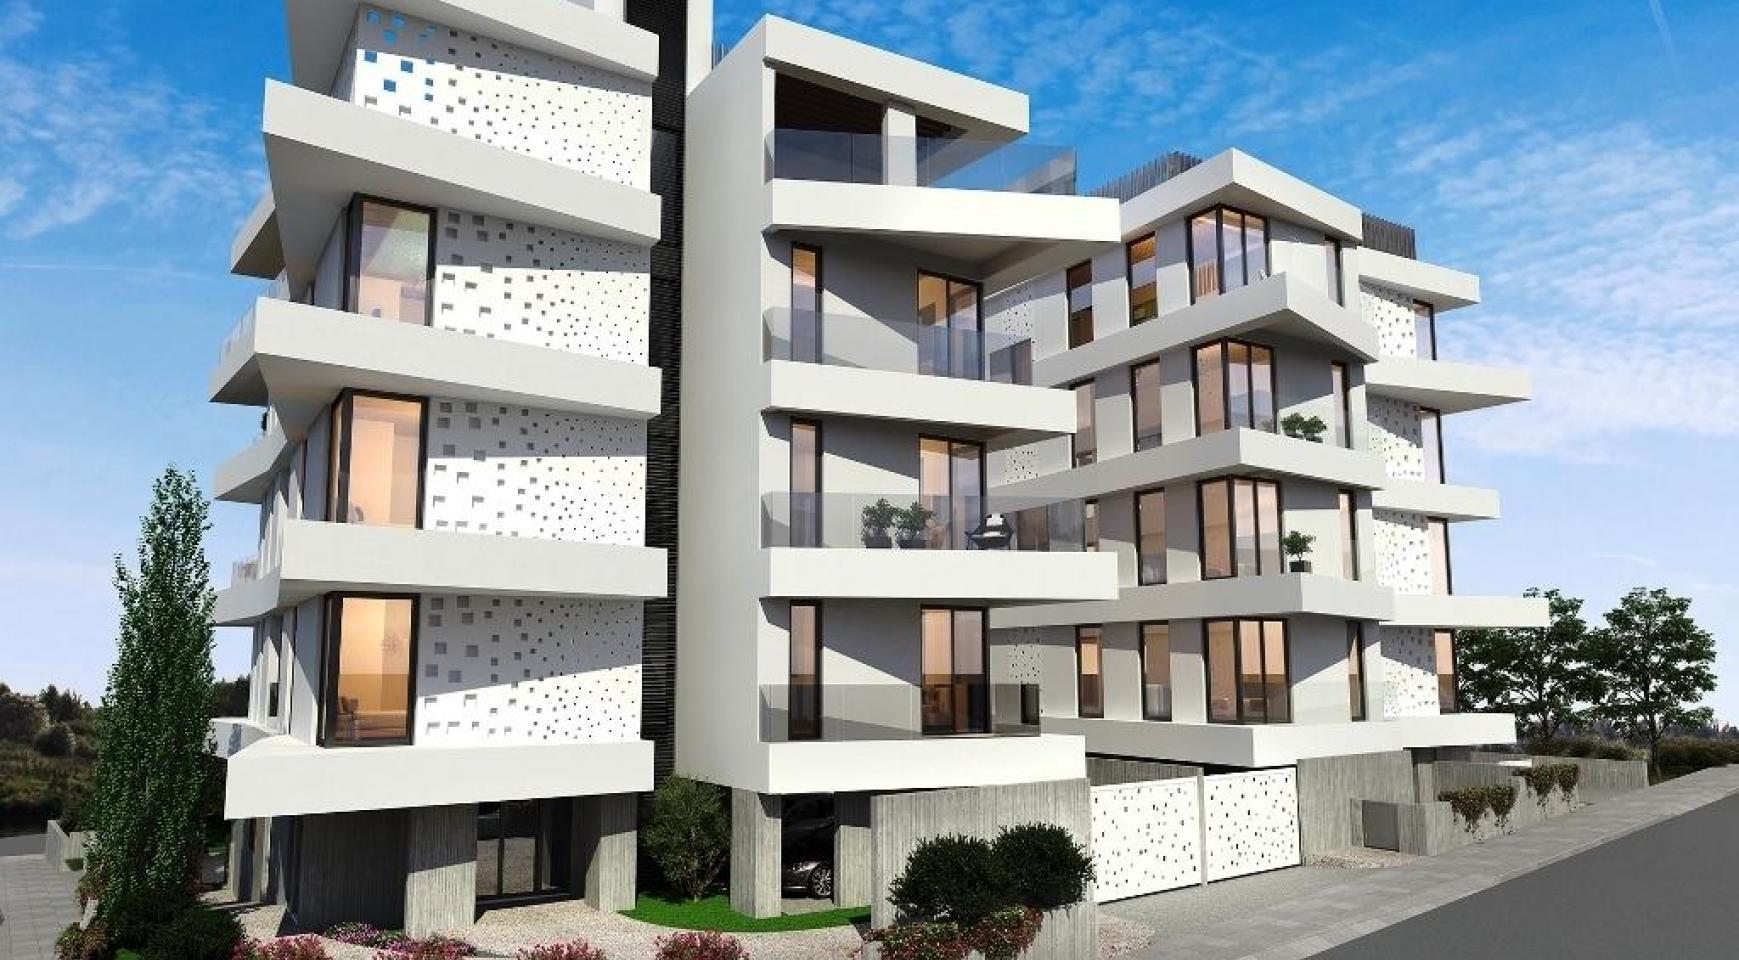 New 2 Bedroom Apartment in a Contemporary Building in Germasogeia Area - 8